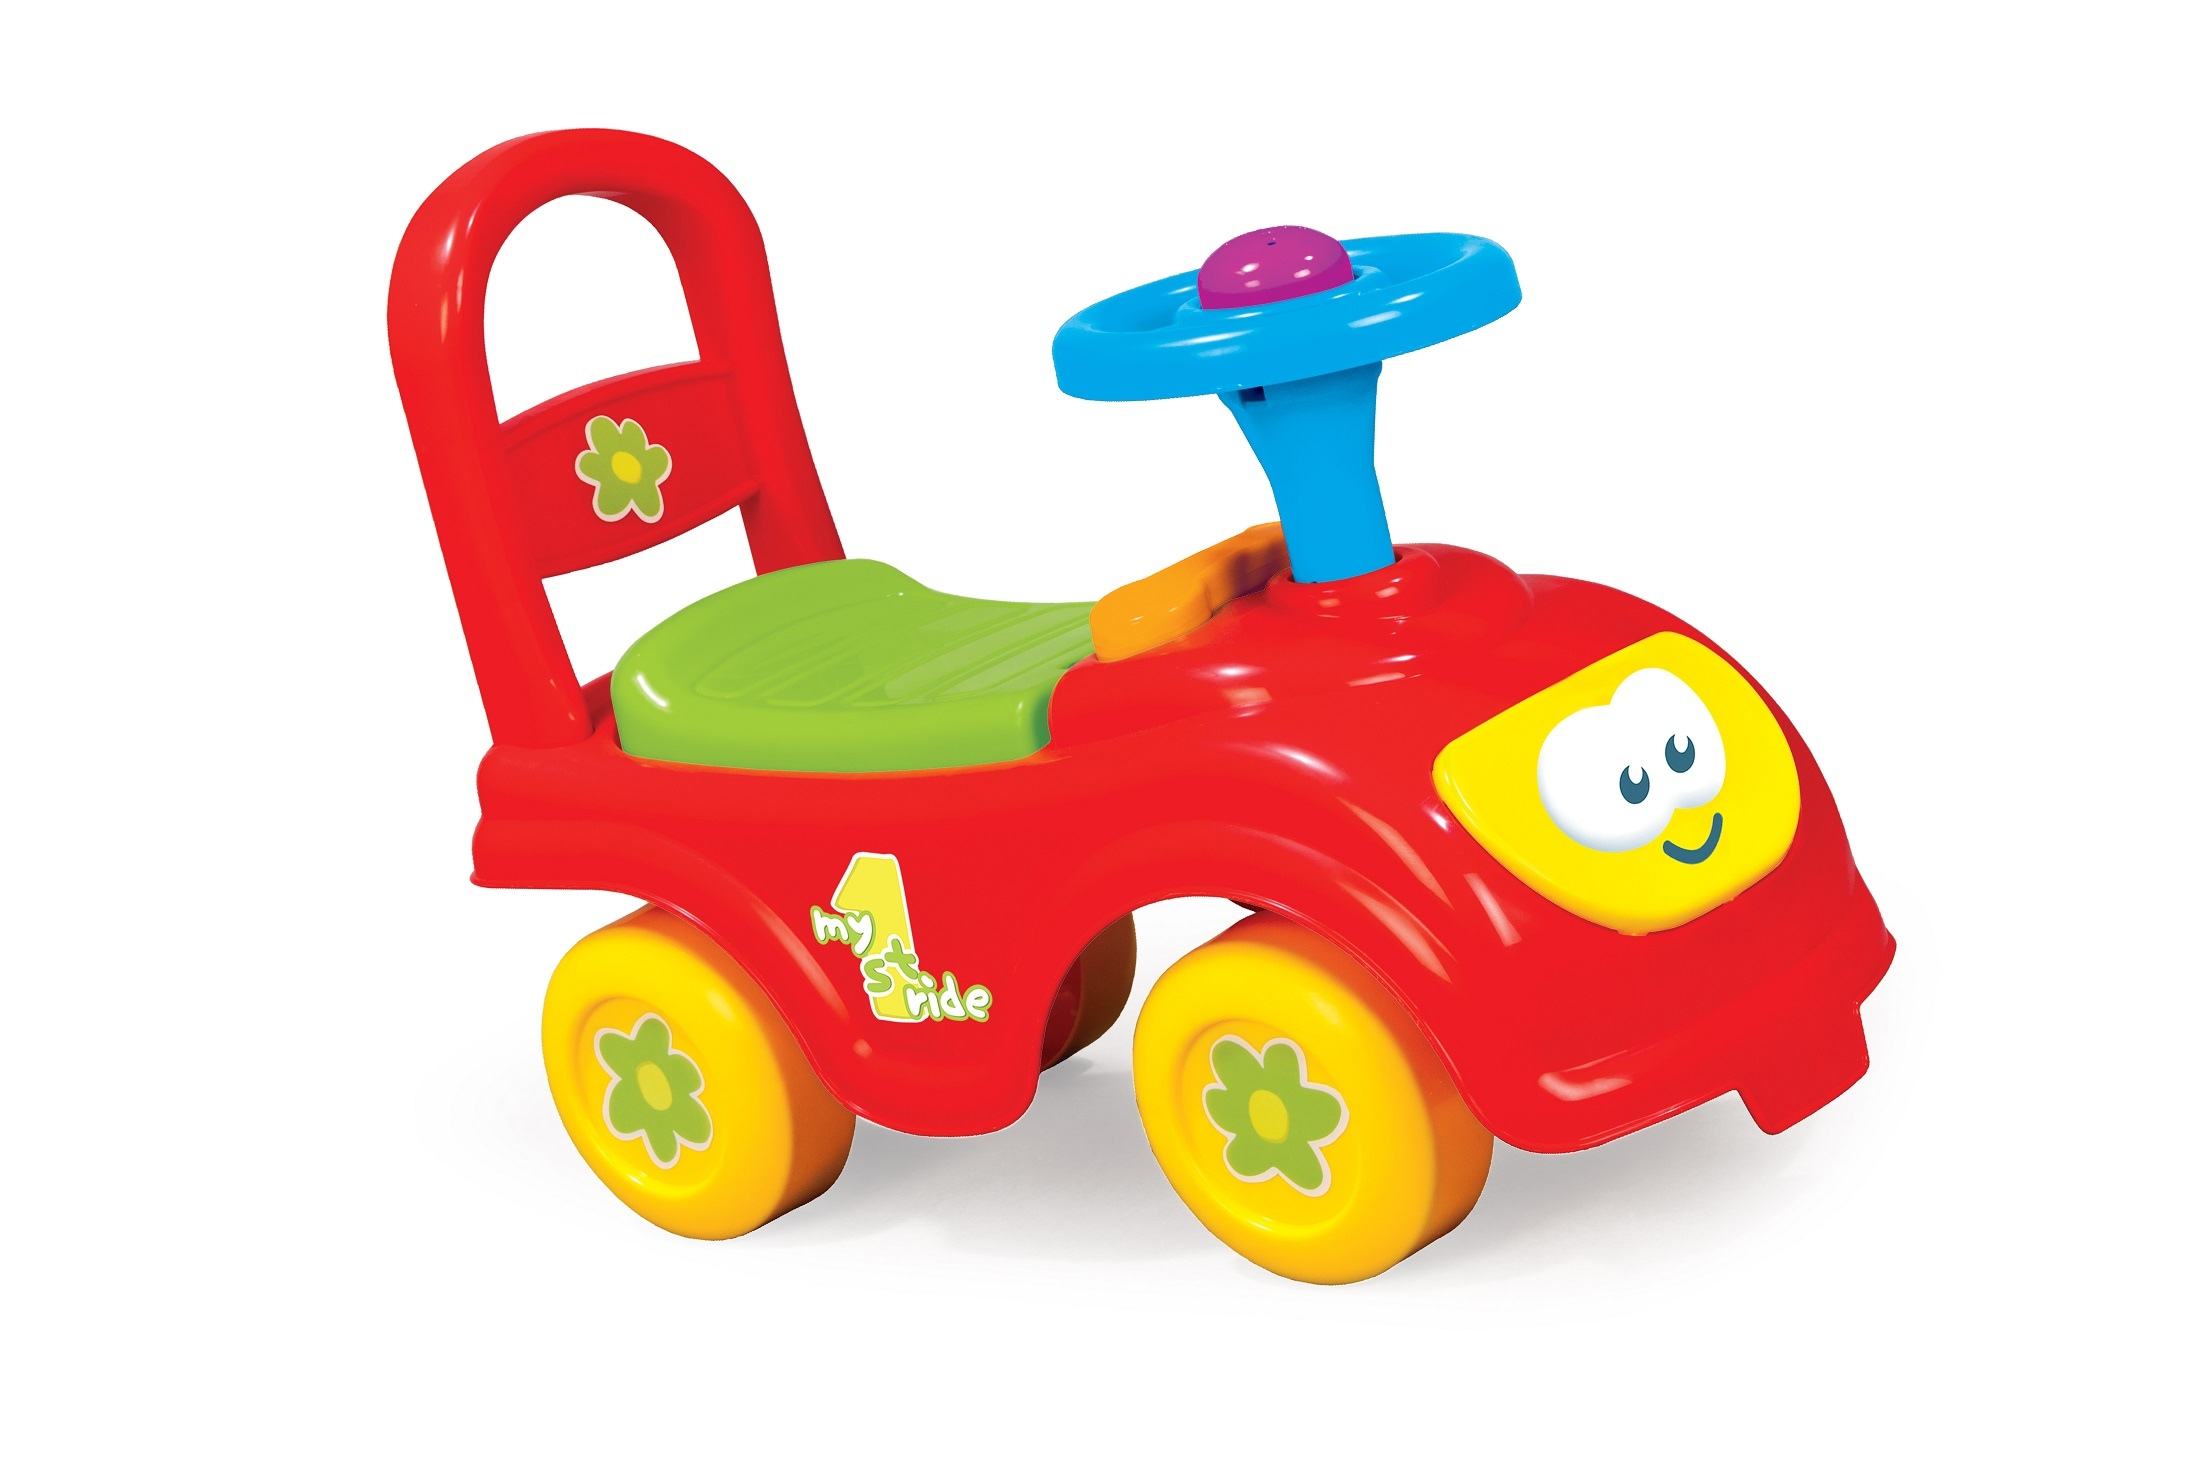 My First Ride Kids Toy Cars Girls Boys Push Along Toddlers